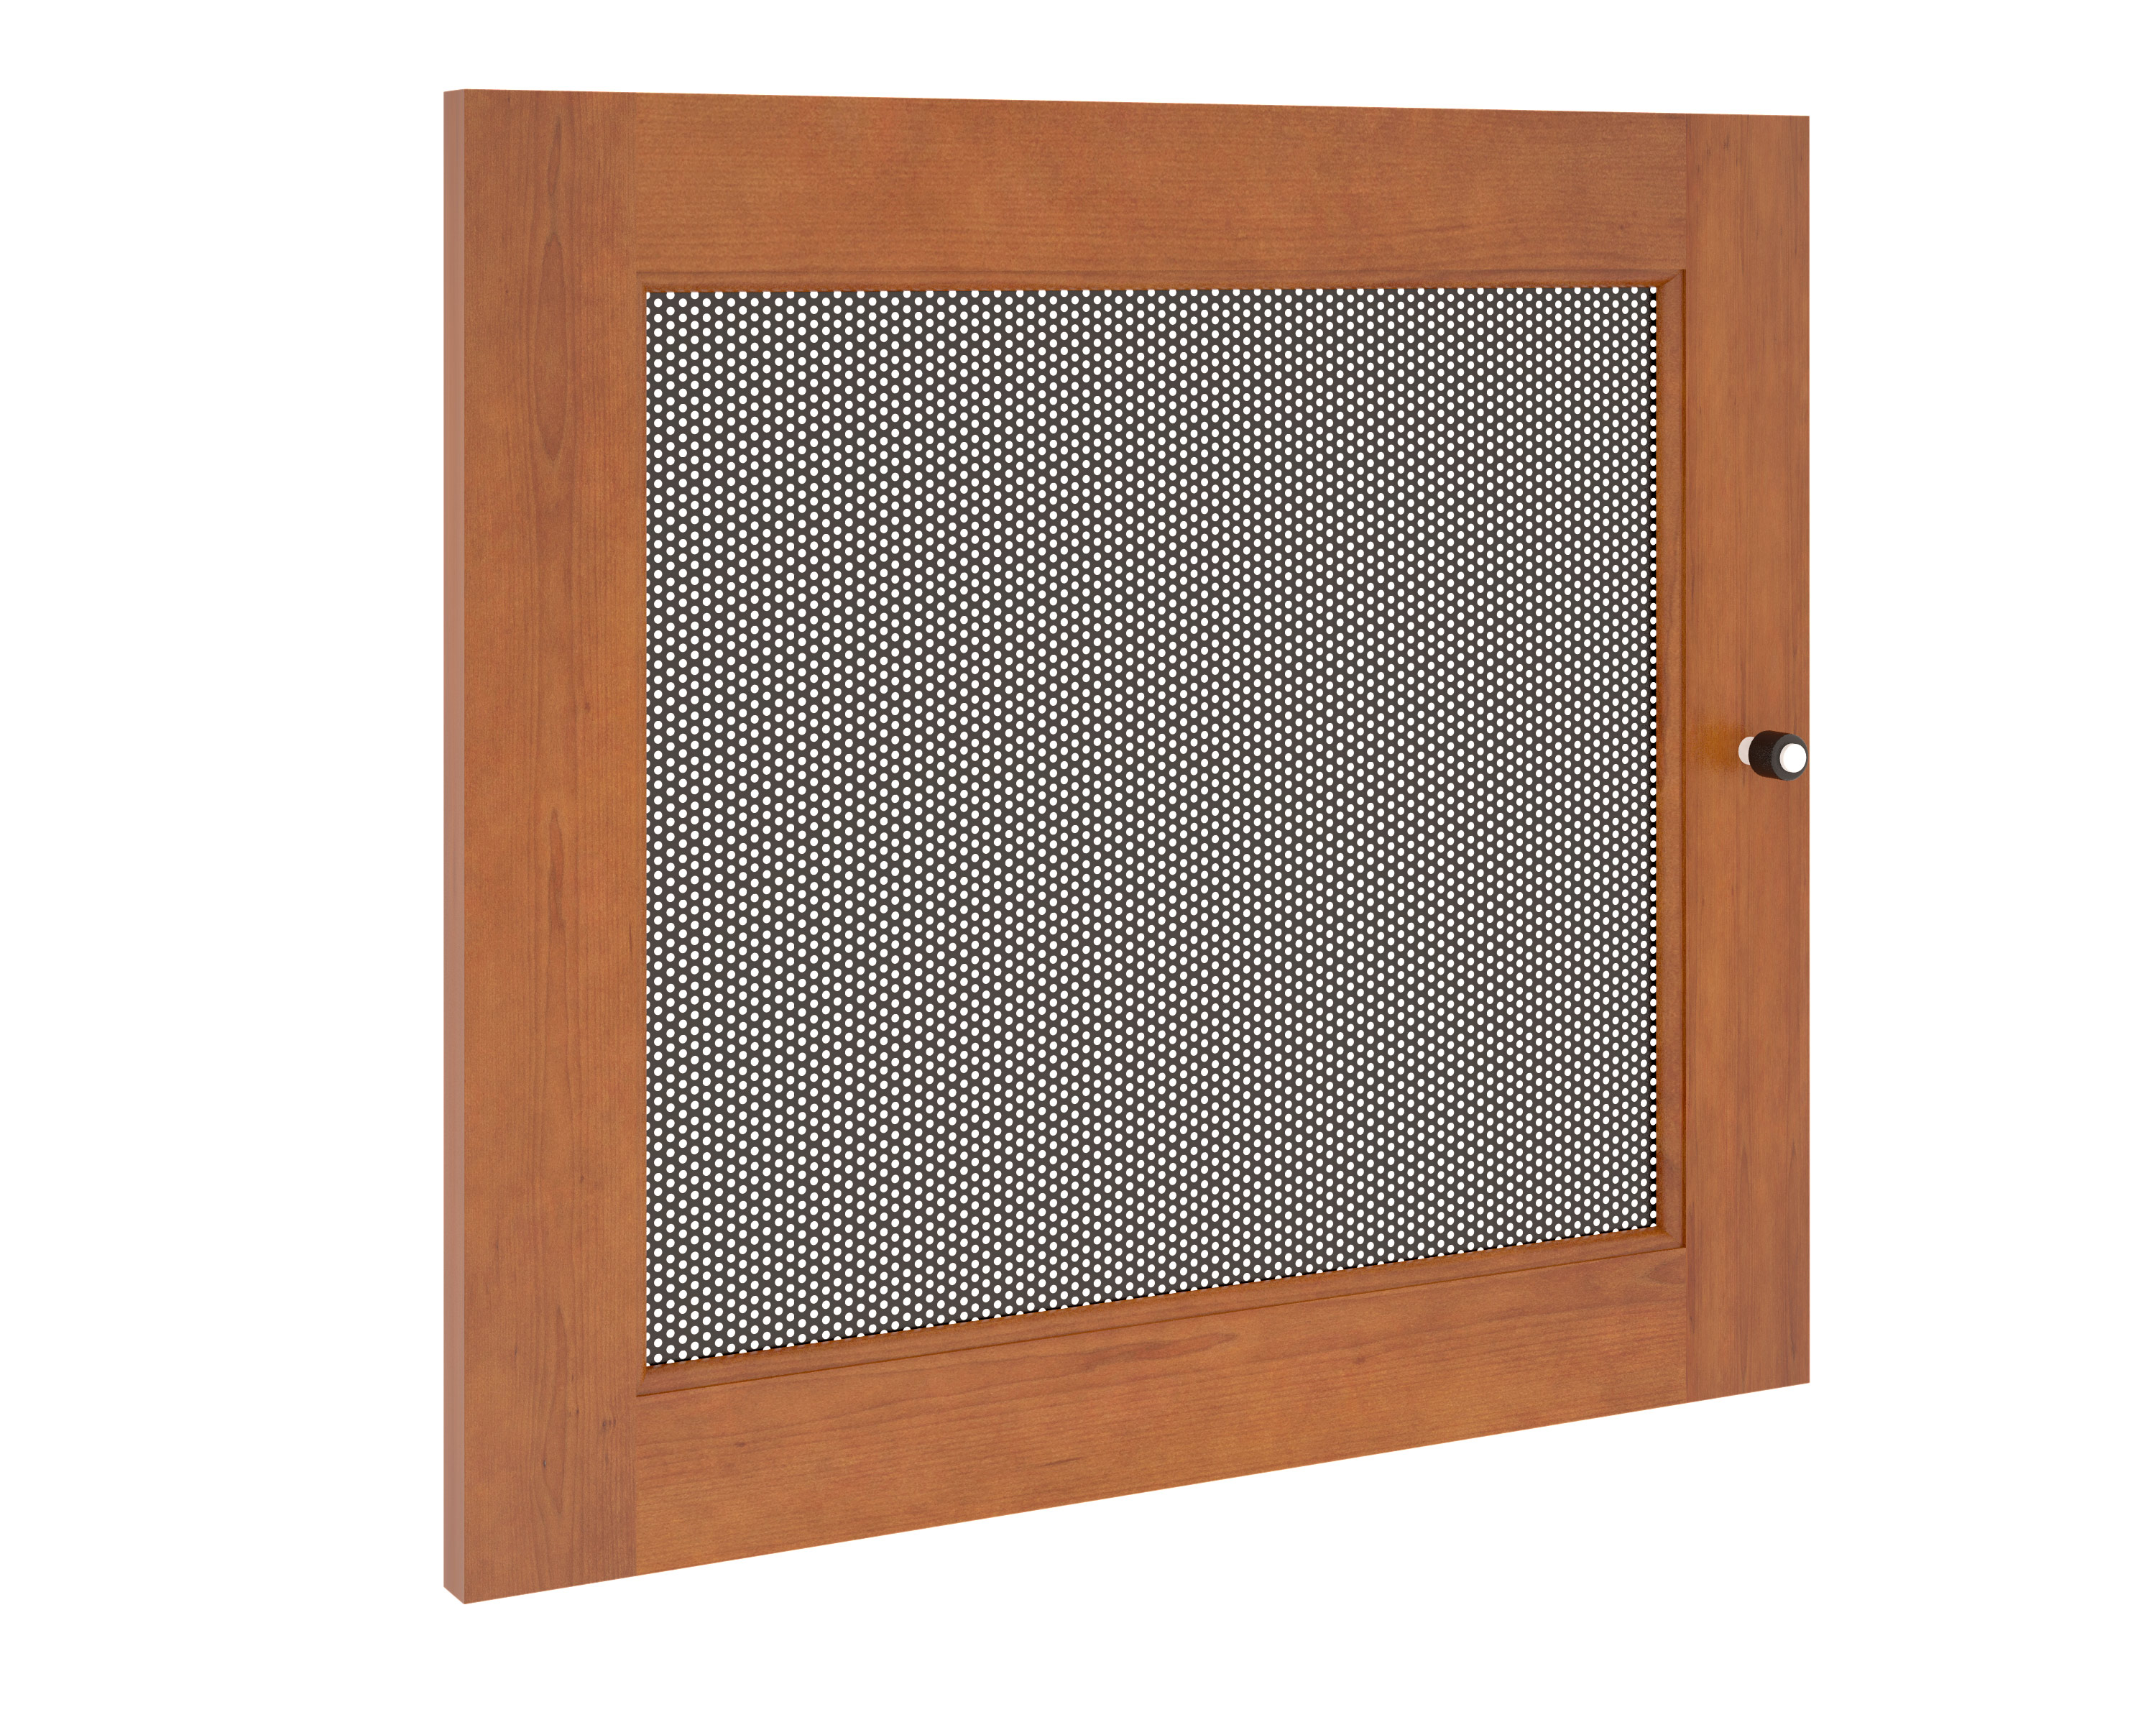 Perforated Metal Doors Amp Odl Array Light Control System